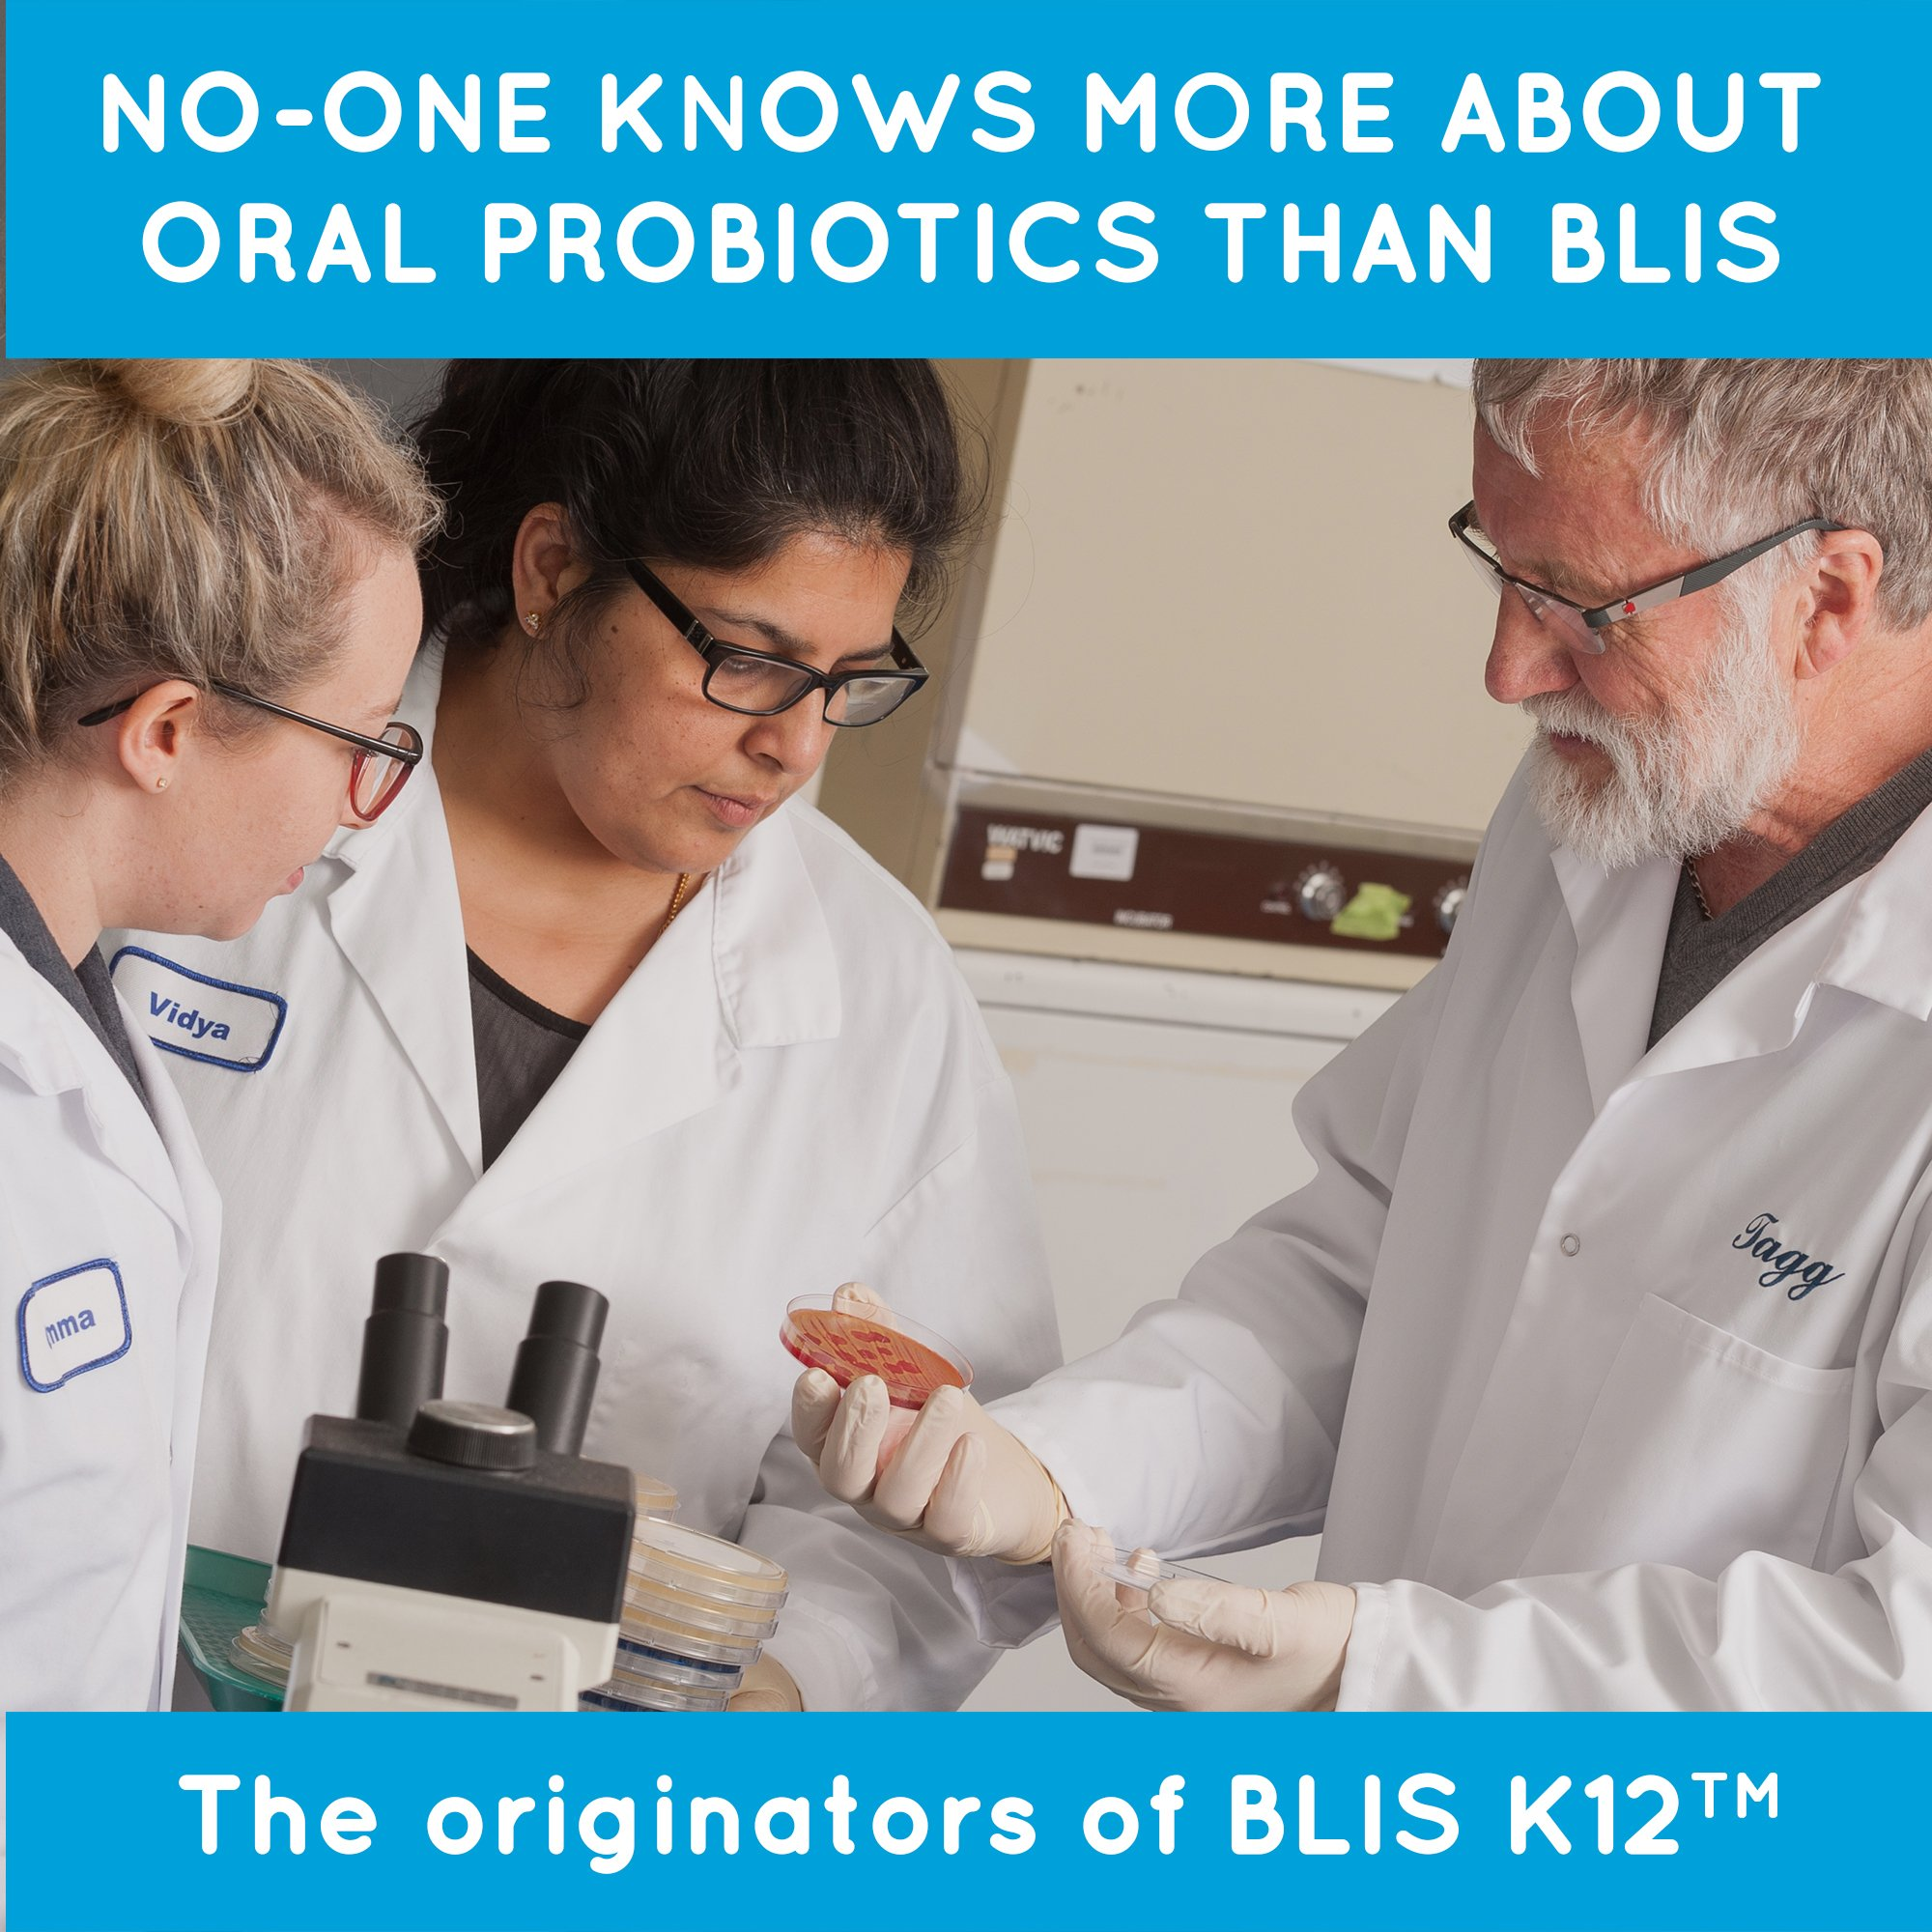 BLIS ThroatHealth Oral Probiotic, Most Potent BLIS K12 Formula Available, 2.5 Billion CFU, Throat Immunity Support for Adults and Kids, Sugar-Free Lozenges, 30 Day Supply by bliss (Image #9)